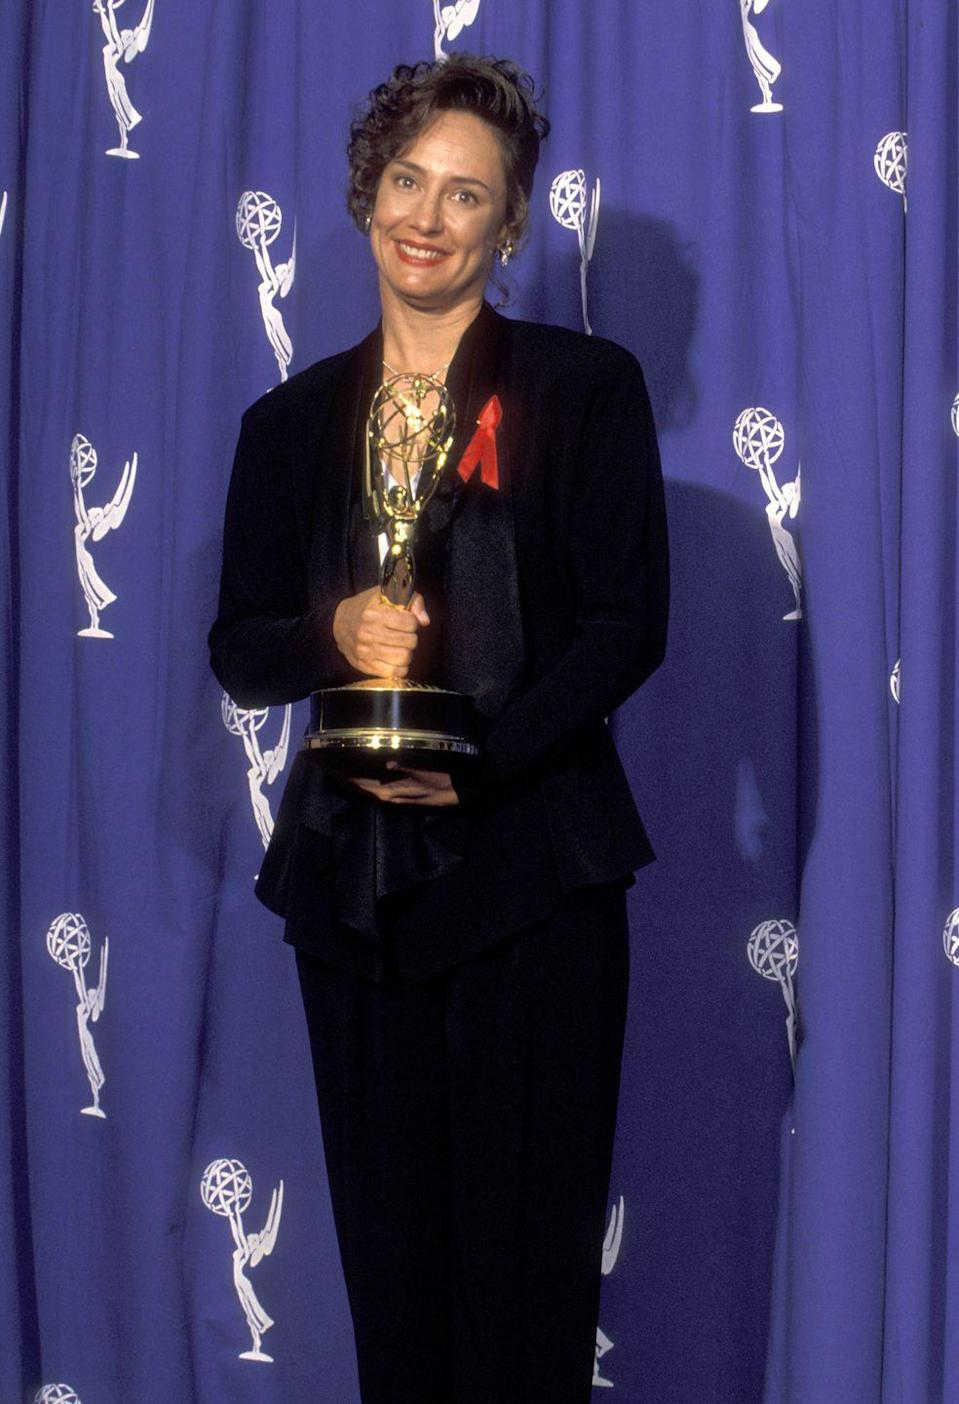 """<p>Metcalf wore a classic black pantsuit when she won her Emmy for Outstanding Supporting Actress in a Comedy Series for her role on <em>Roseanne</em><span class=""""redactor-invisible-space""""> in 1993. </span></p>"""